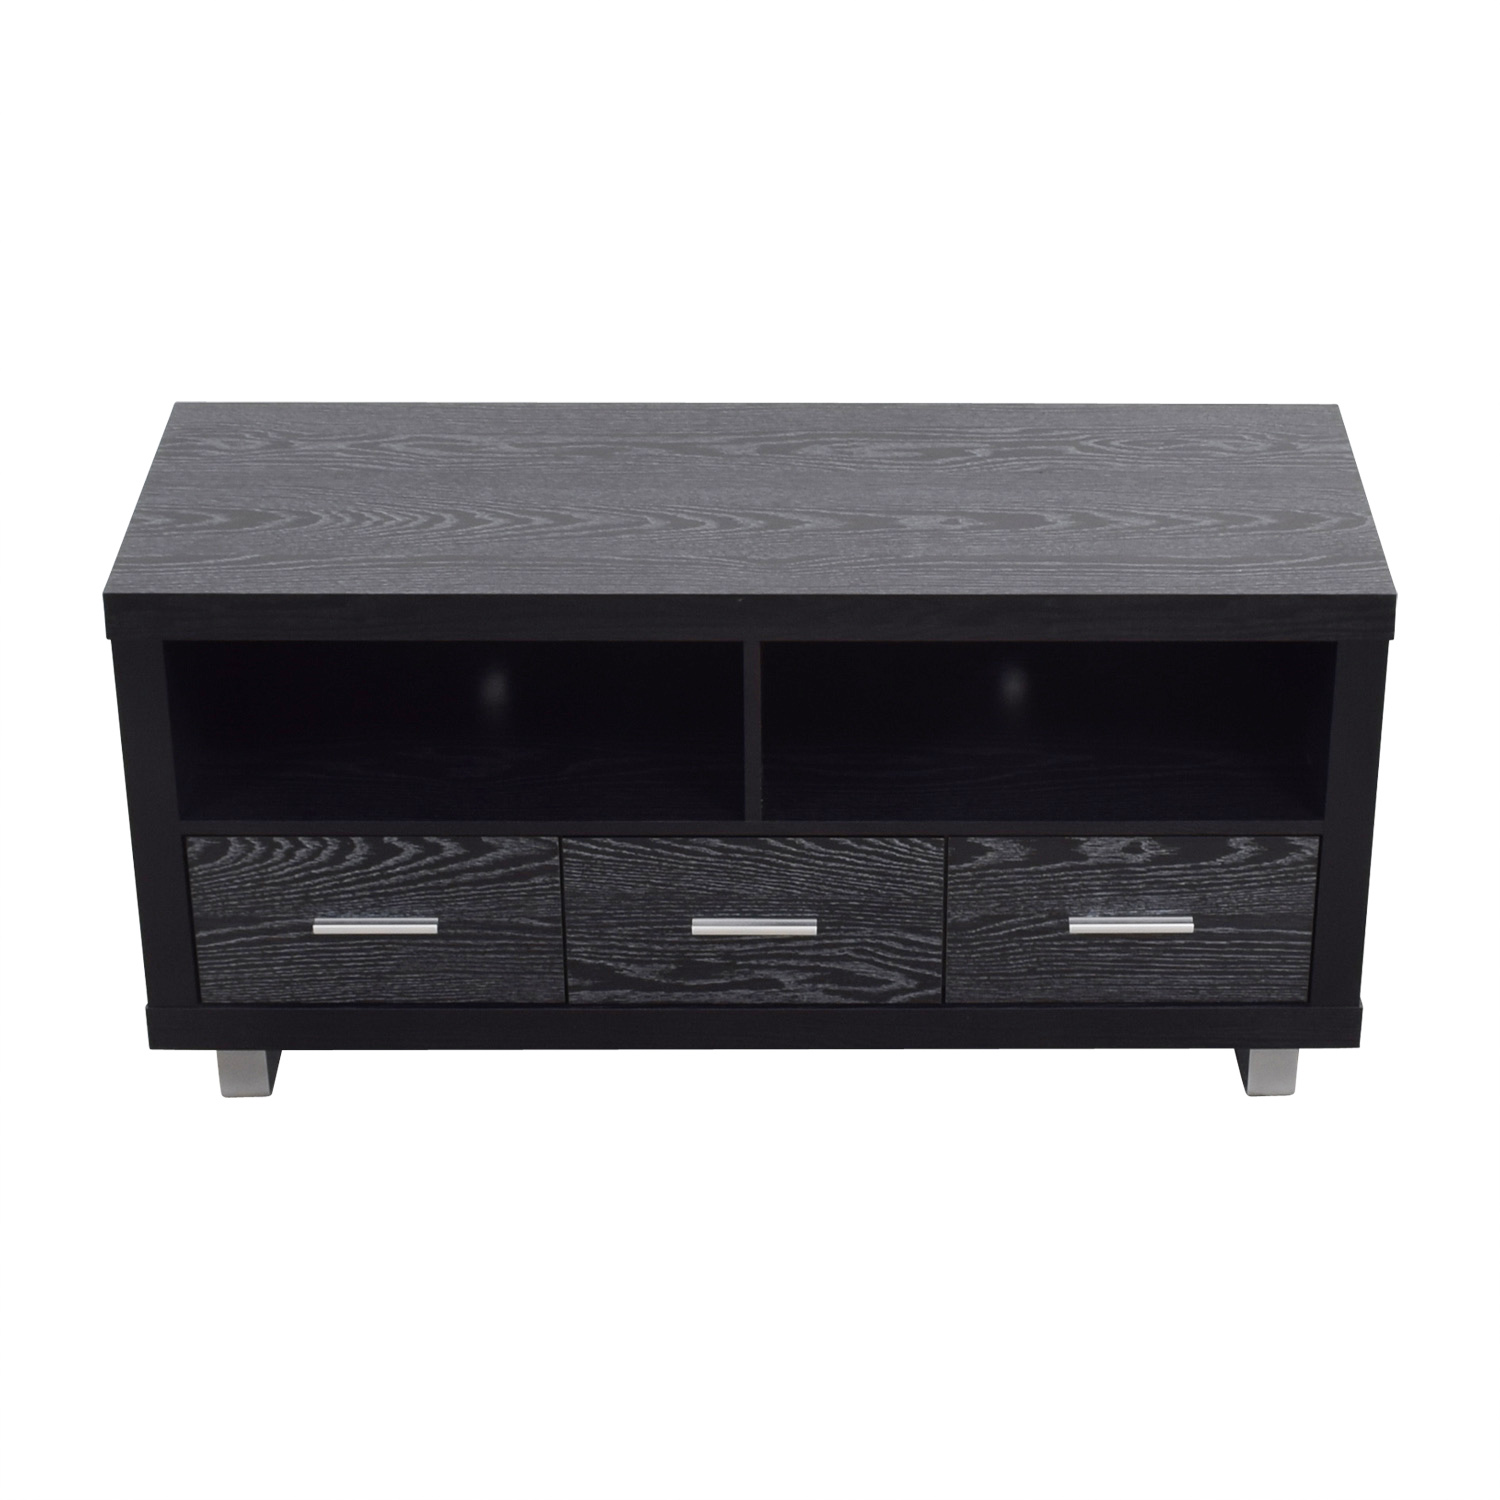 Coaster Black Three-Drawer Media Cabinet / Storage